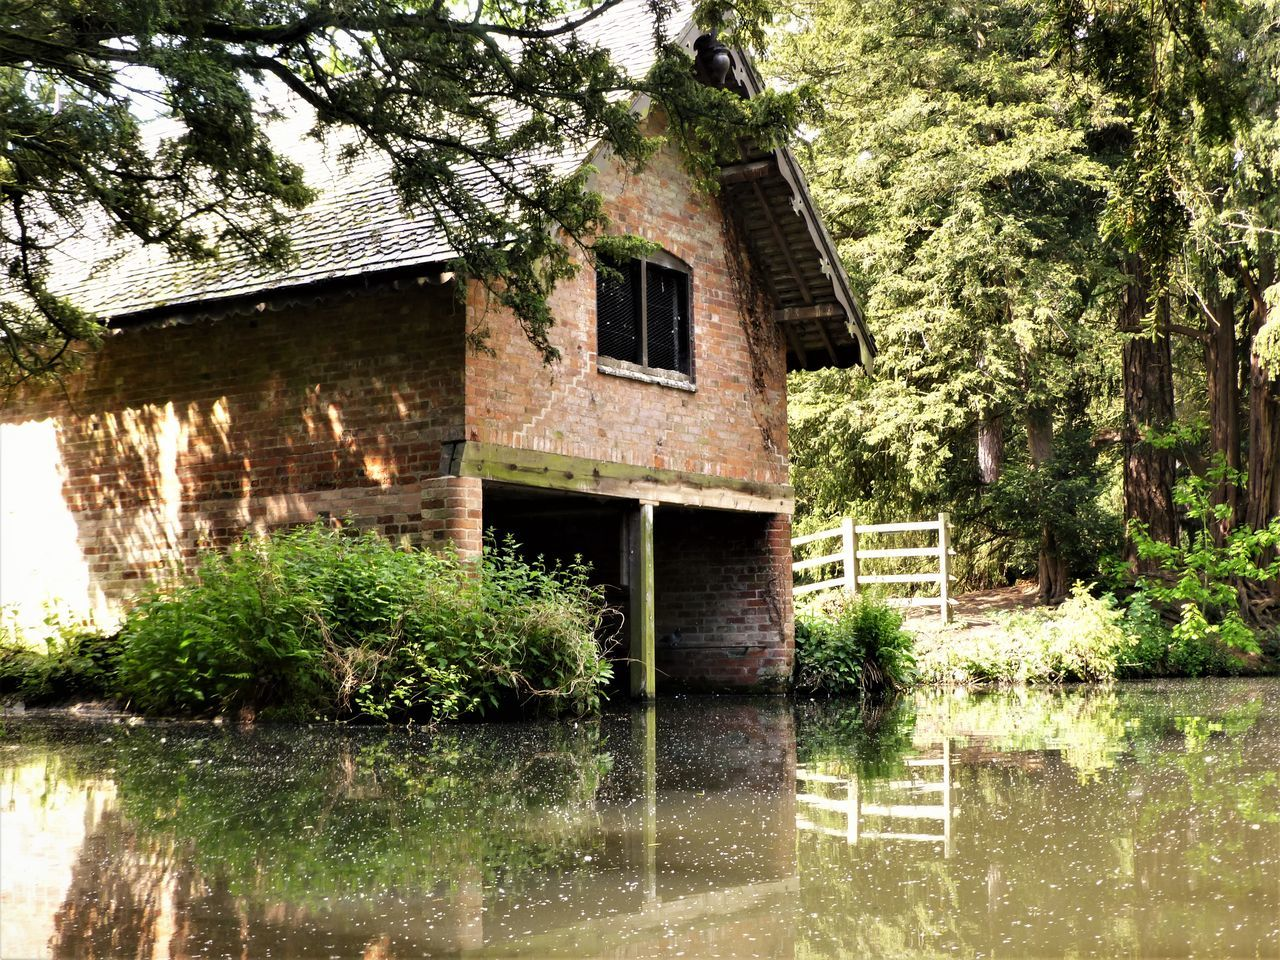 architecture, tree, reflection, building exterior, built structure, outdoors, water, no people, house, plant, day, nature, watermill, grass, sky